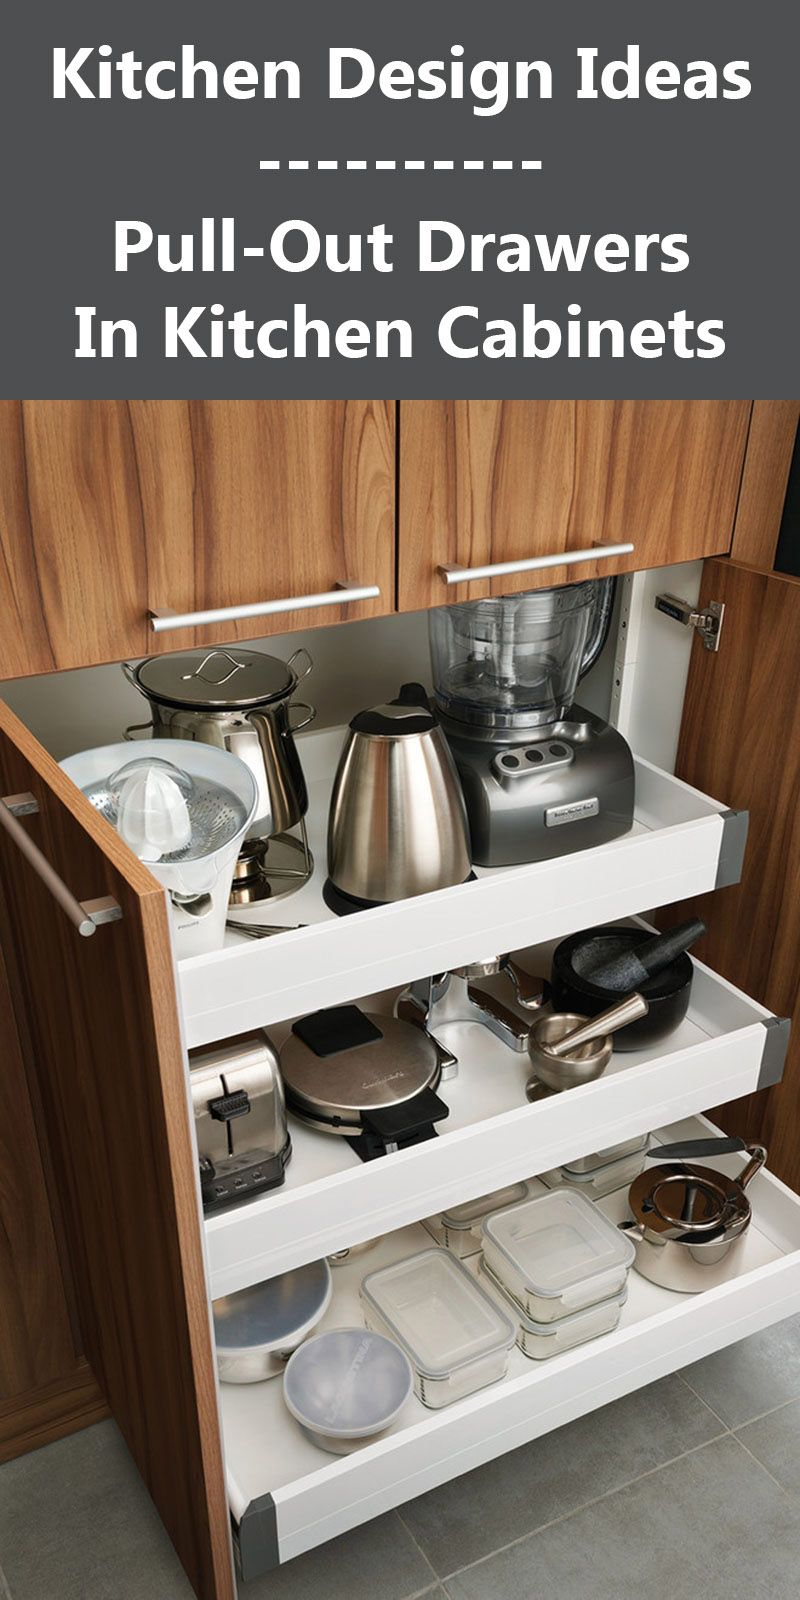 Sliding Cabinet Shelves Pull Out Trays For Kitchen Cabinets Rolling Rolling Kitchen Cabinet Shelves D Kitchen Solutions Kitchen Cabinet Storage Kitchen Storage